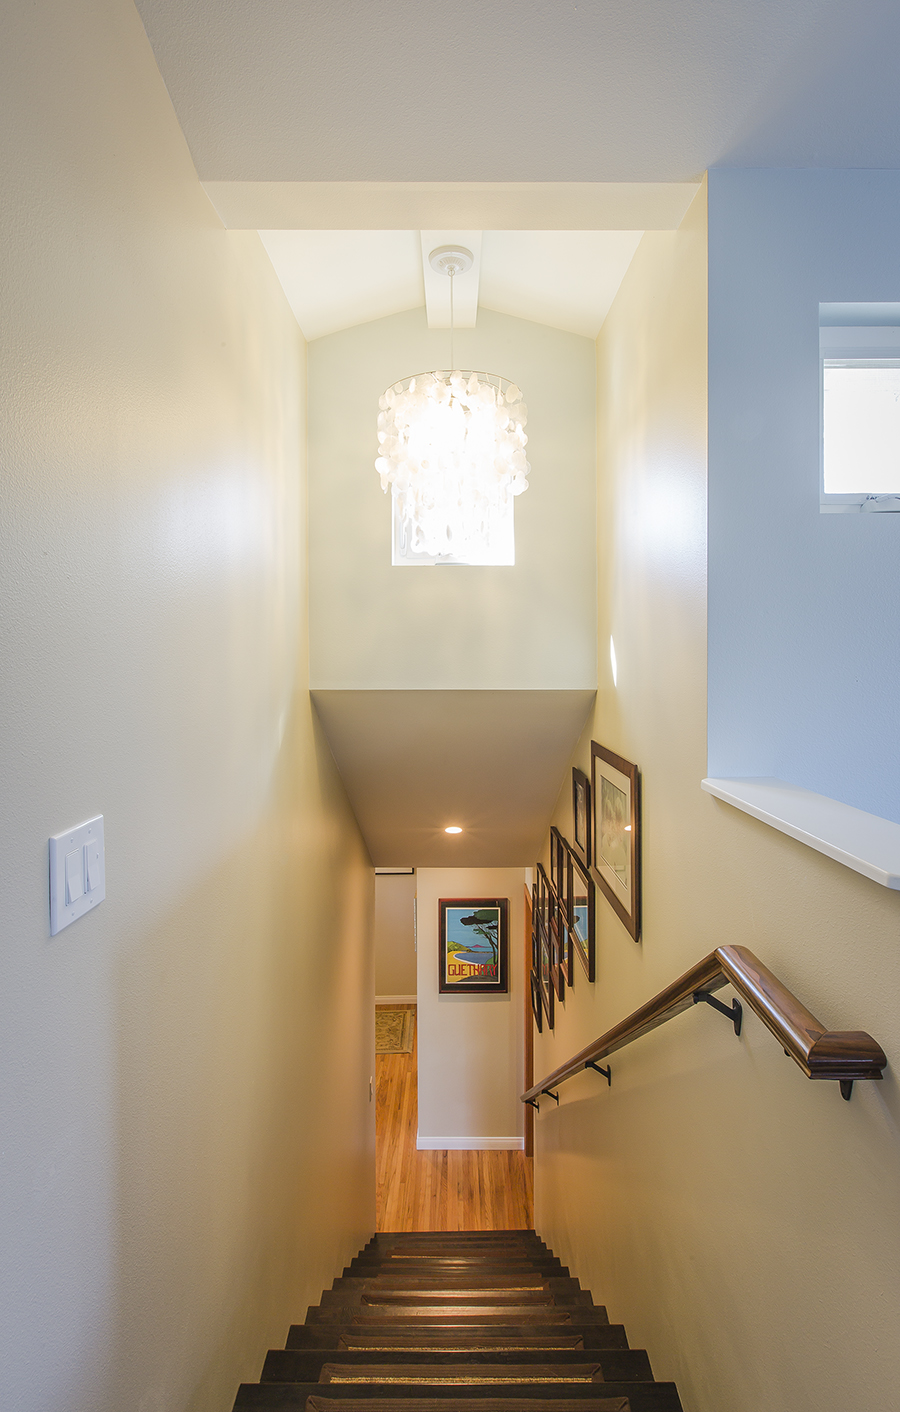 Stairs from above